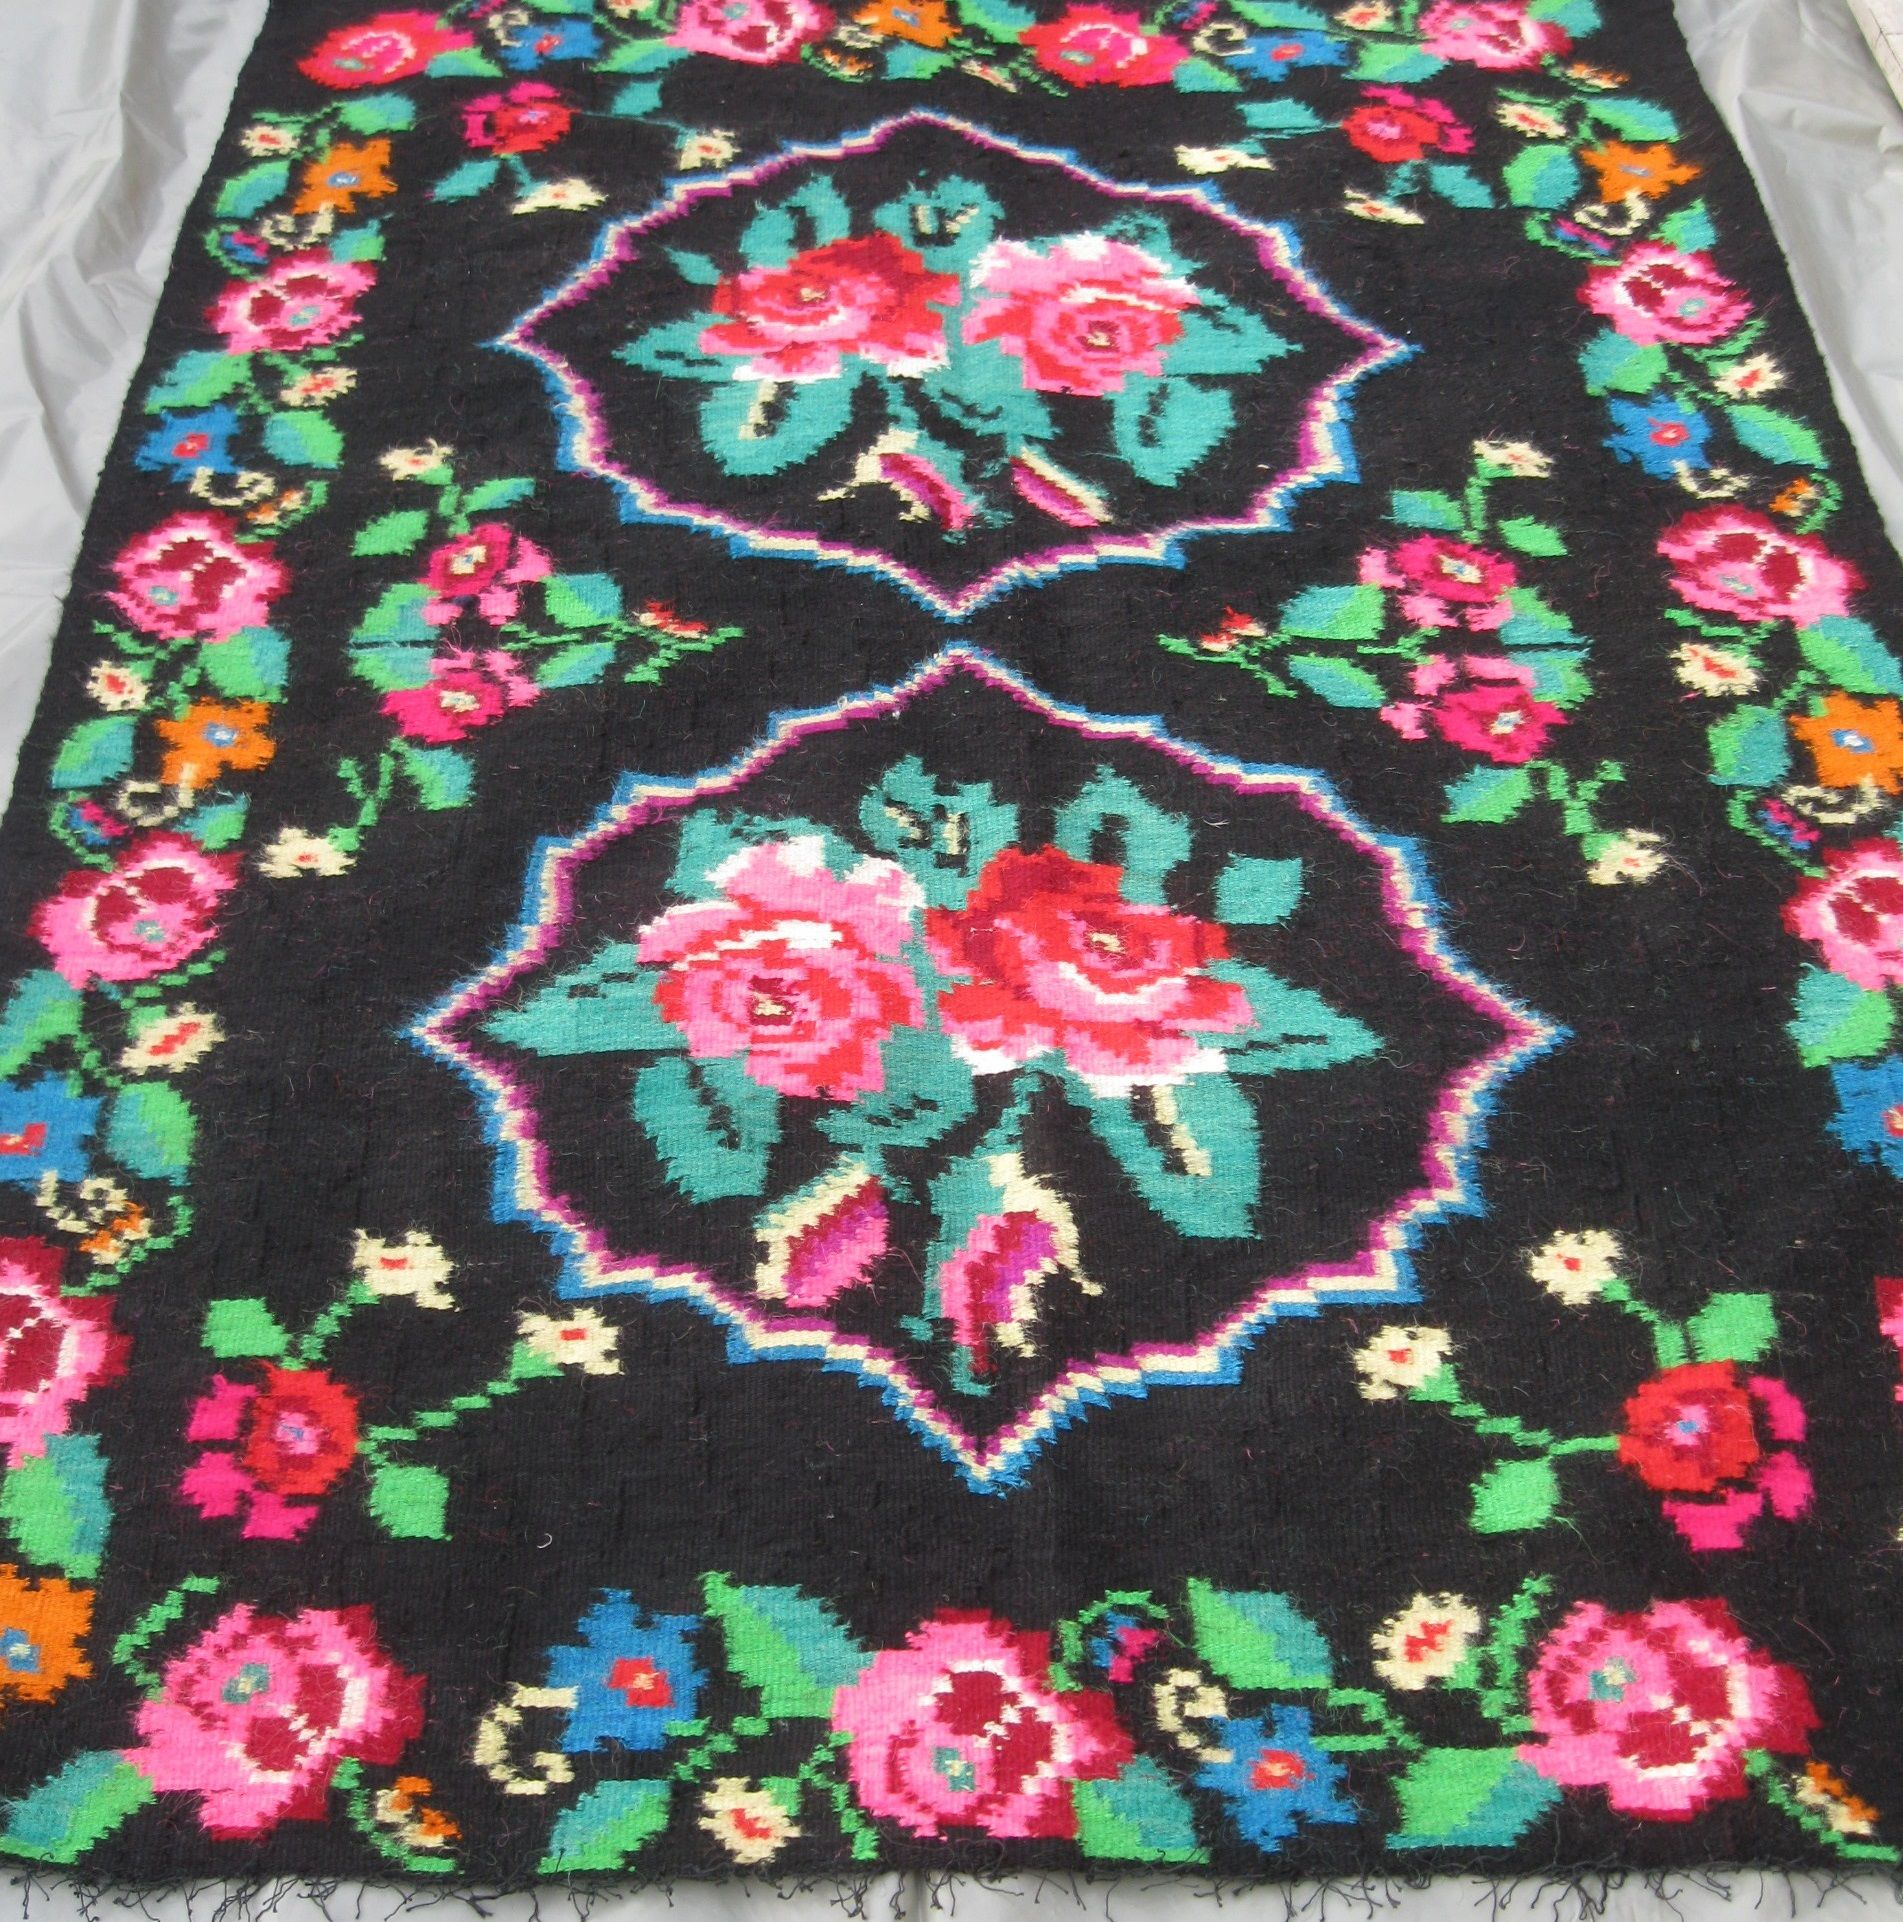 Antique Romanian Traditional Flat Weave Wool Kilim Carpet Rug From Transylvania At Www